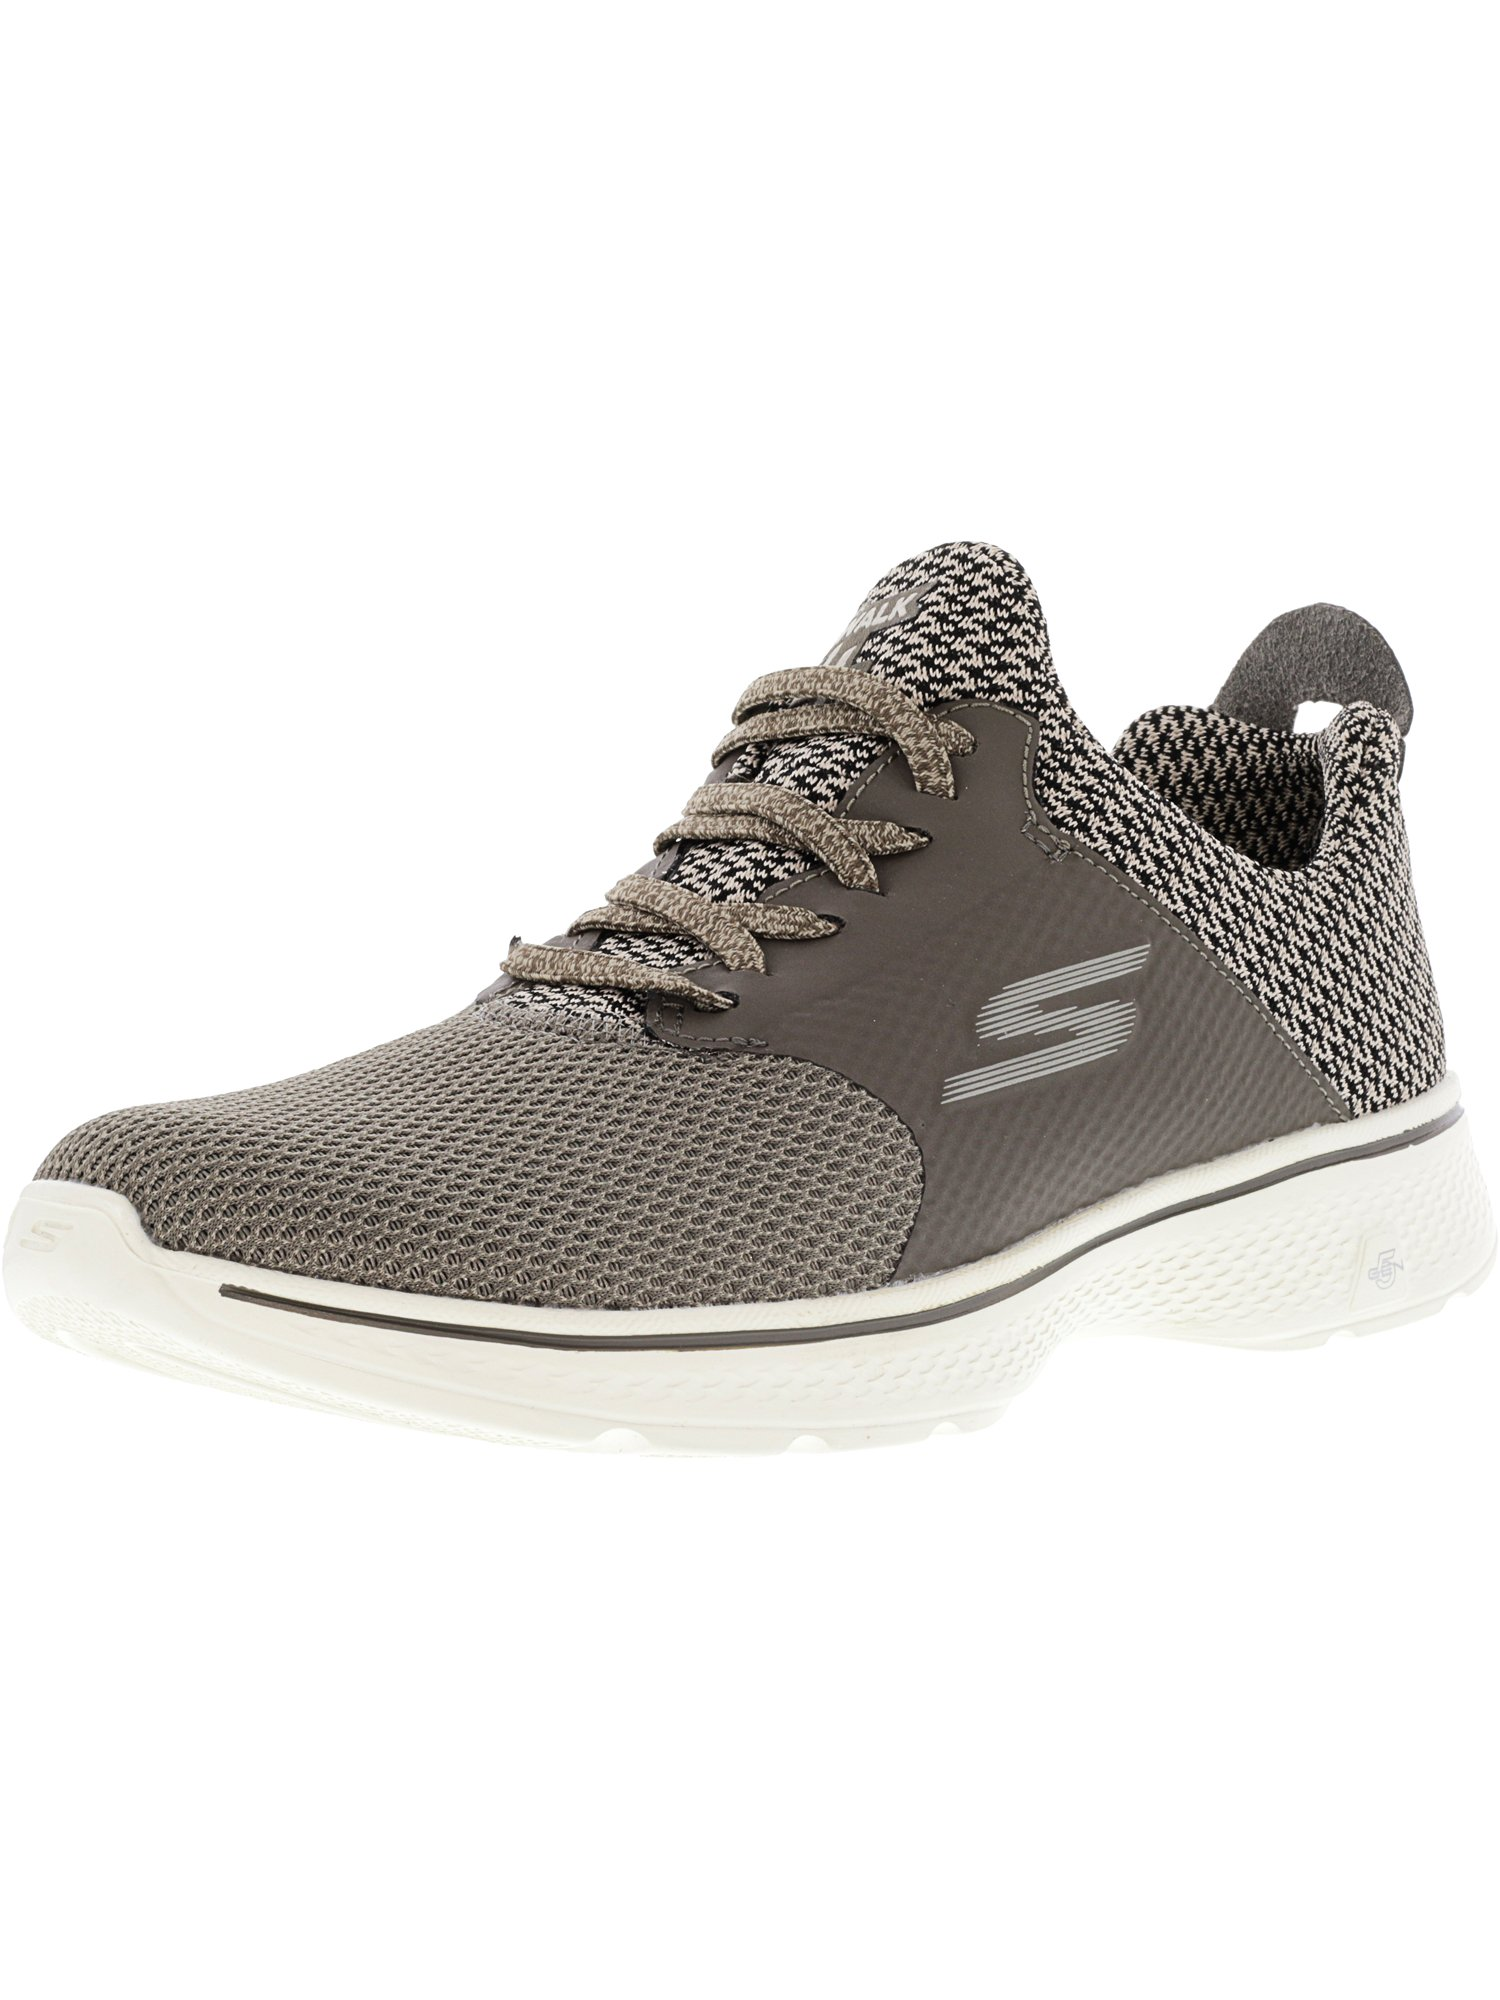 Skechers Men's Go Walk 4 - Instinct Taupe Ankle-High Fashion Sneaker 10M